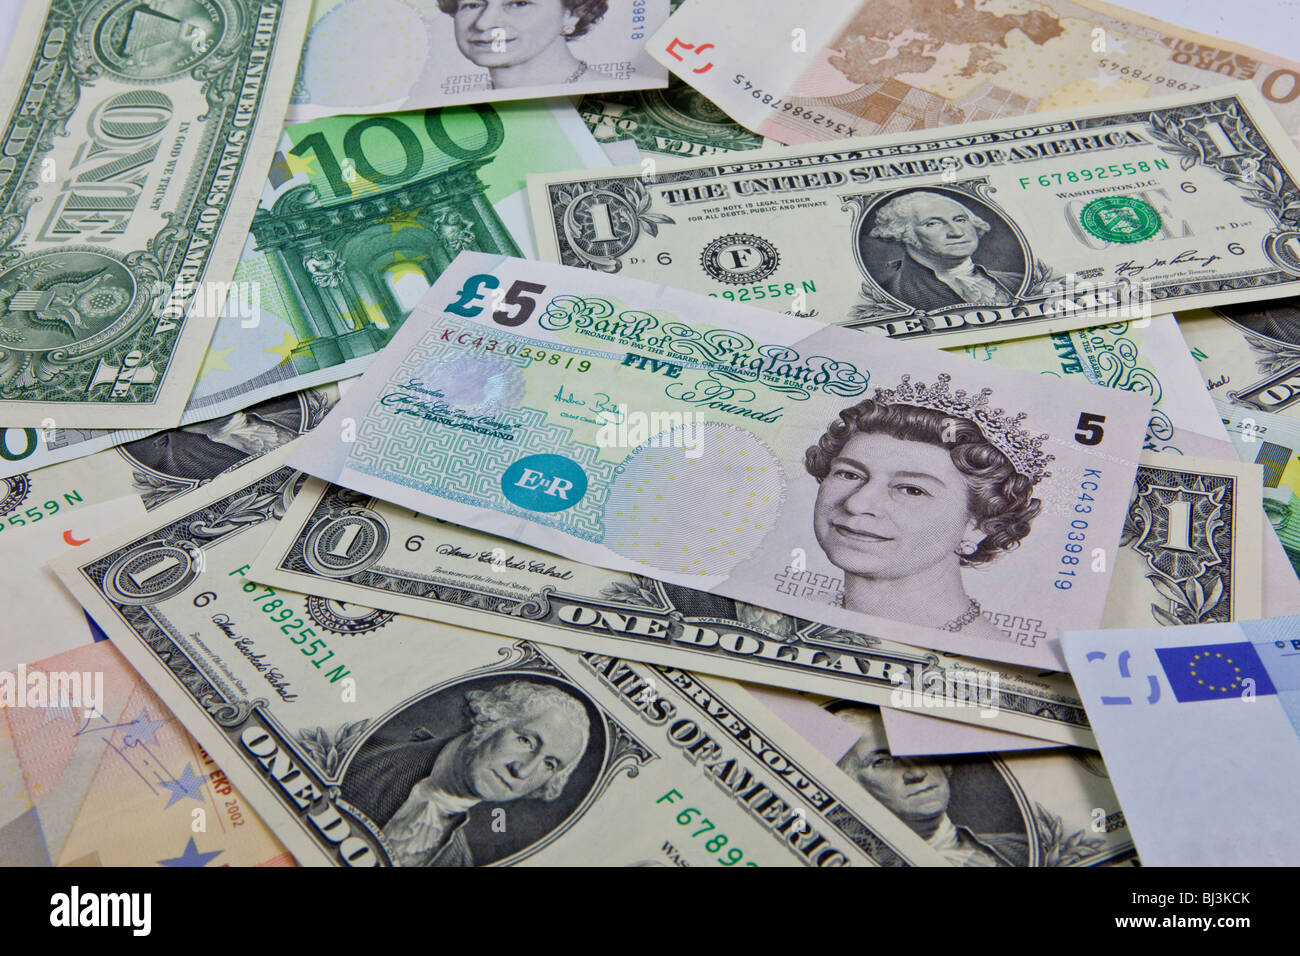 British pound sign stock photos british pound sign stock images a mixture of bank notes us dollars euros and british pounds stock image biocorpaavc Gallery